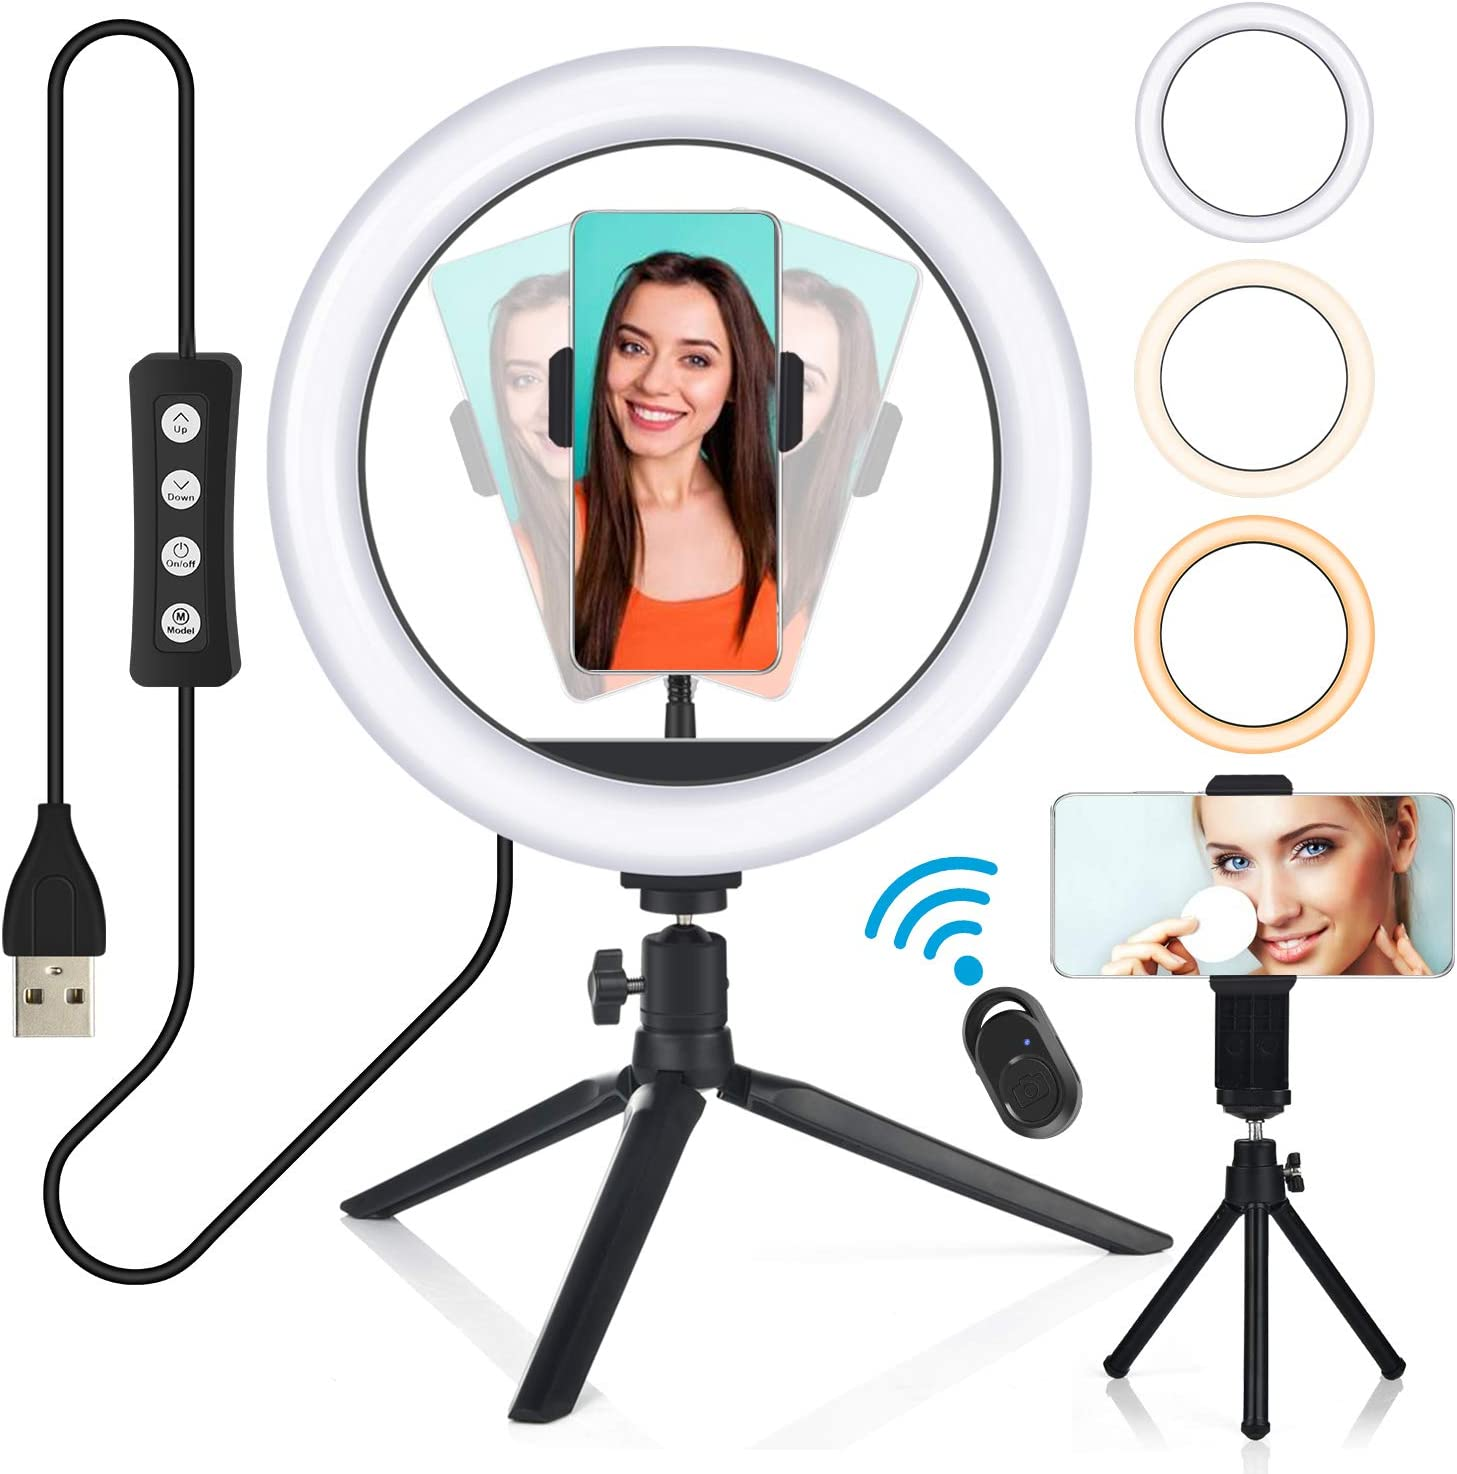 Amazon Promo Code for 10 Inch Ring Light